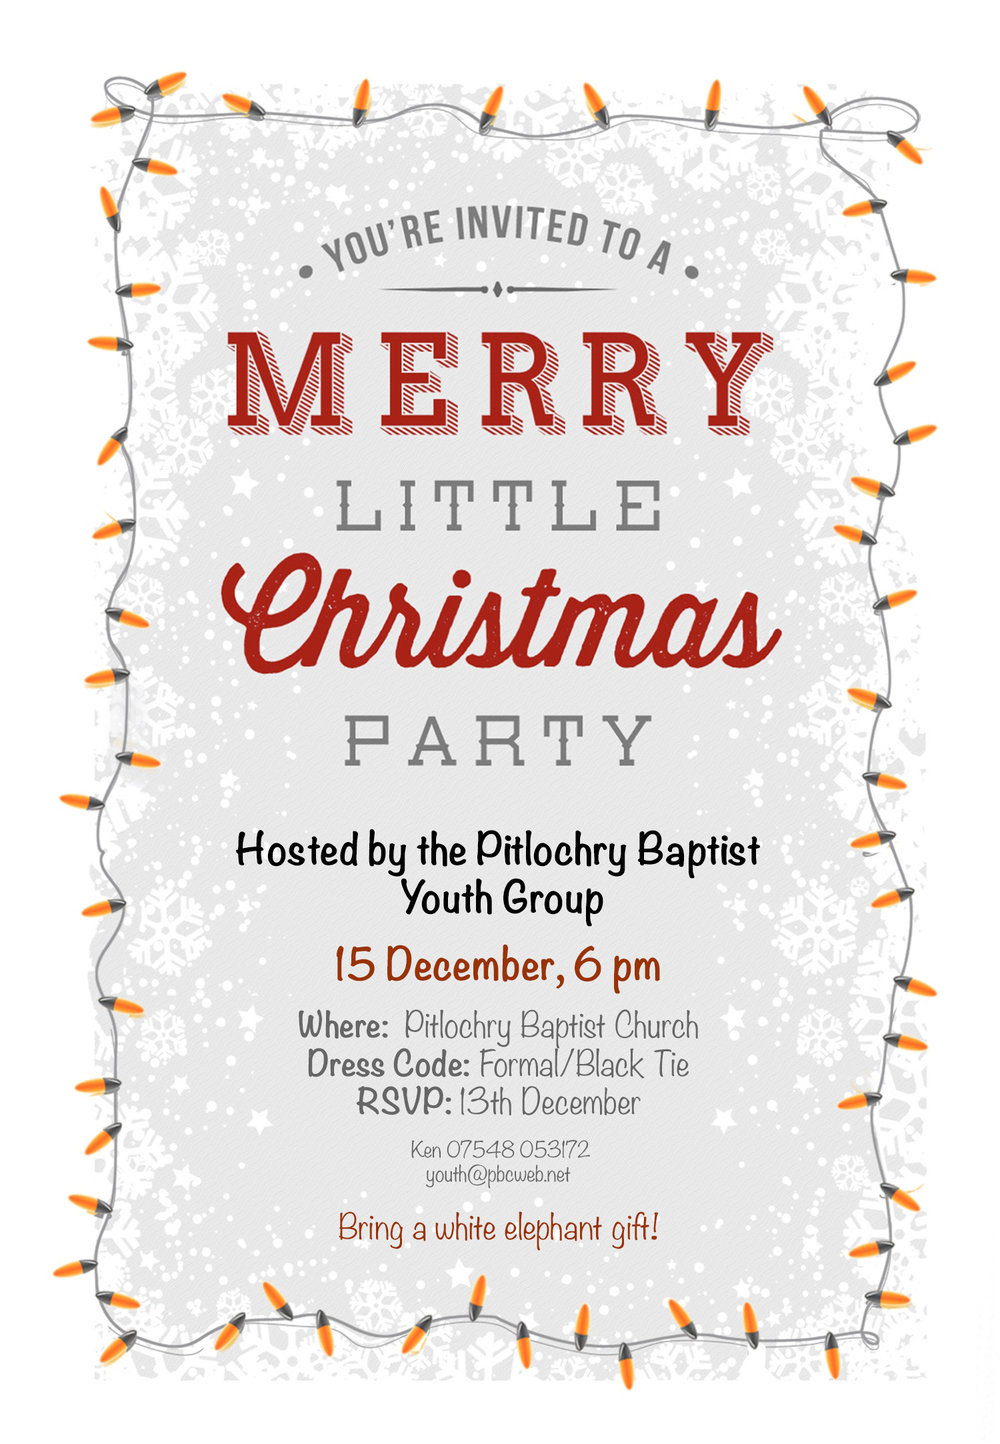 christmas party invitation pitlochry baptist church